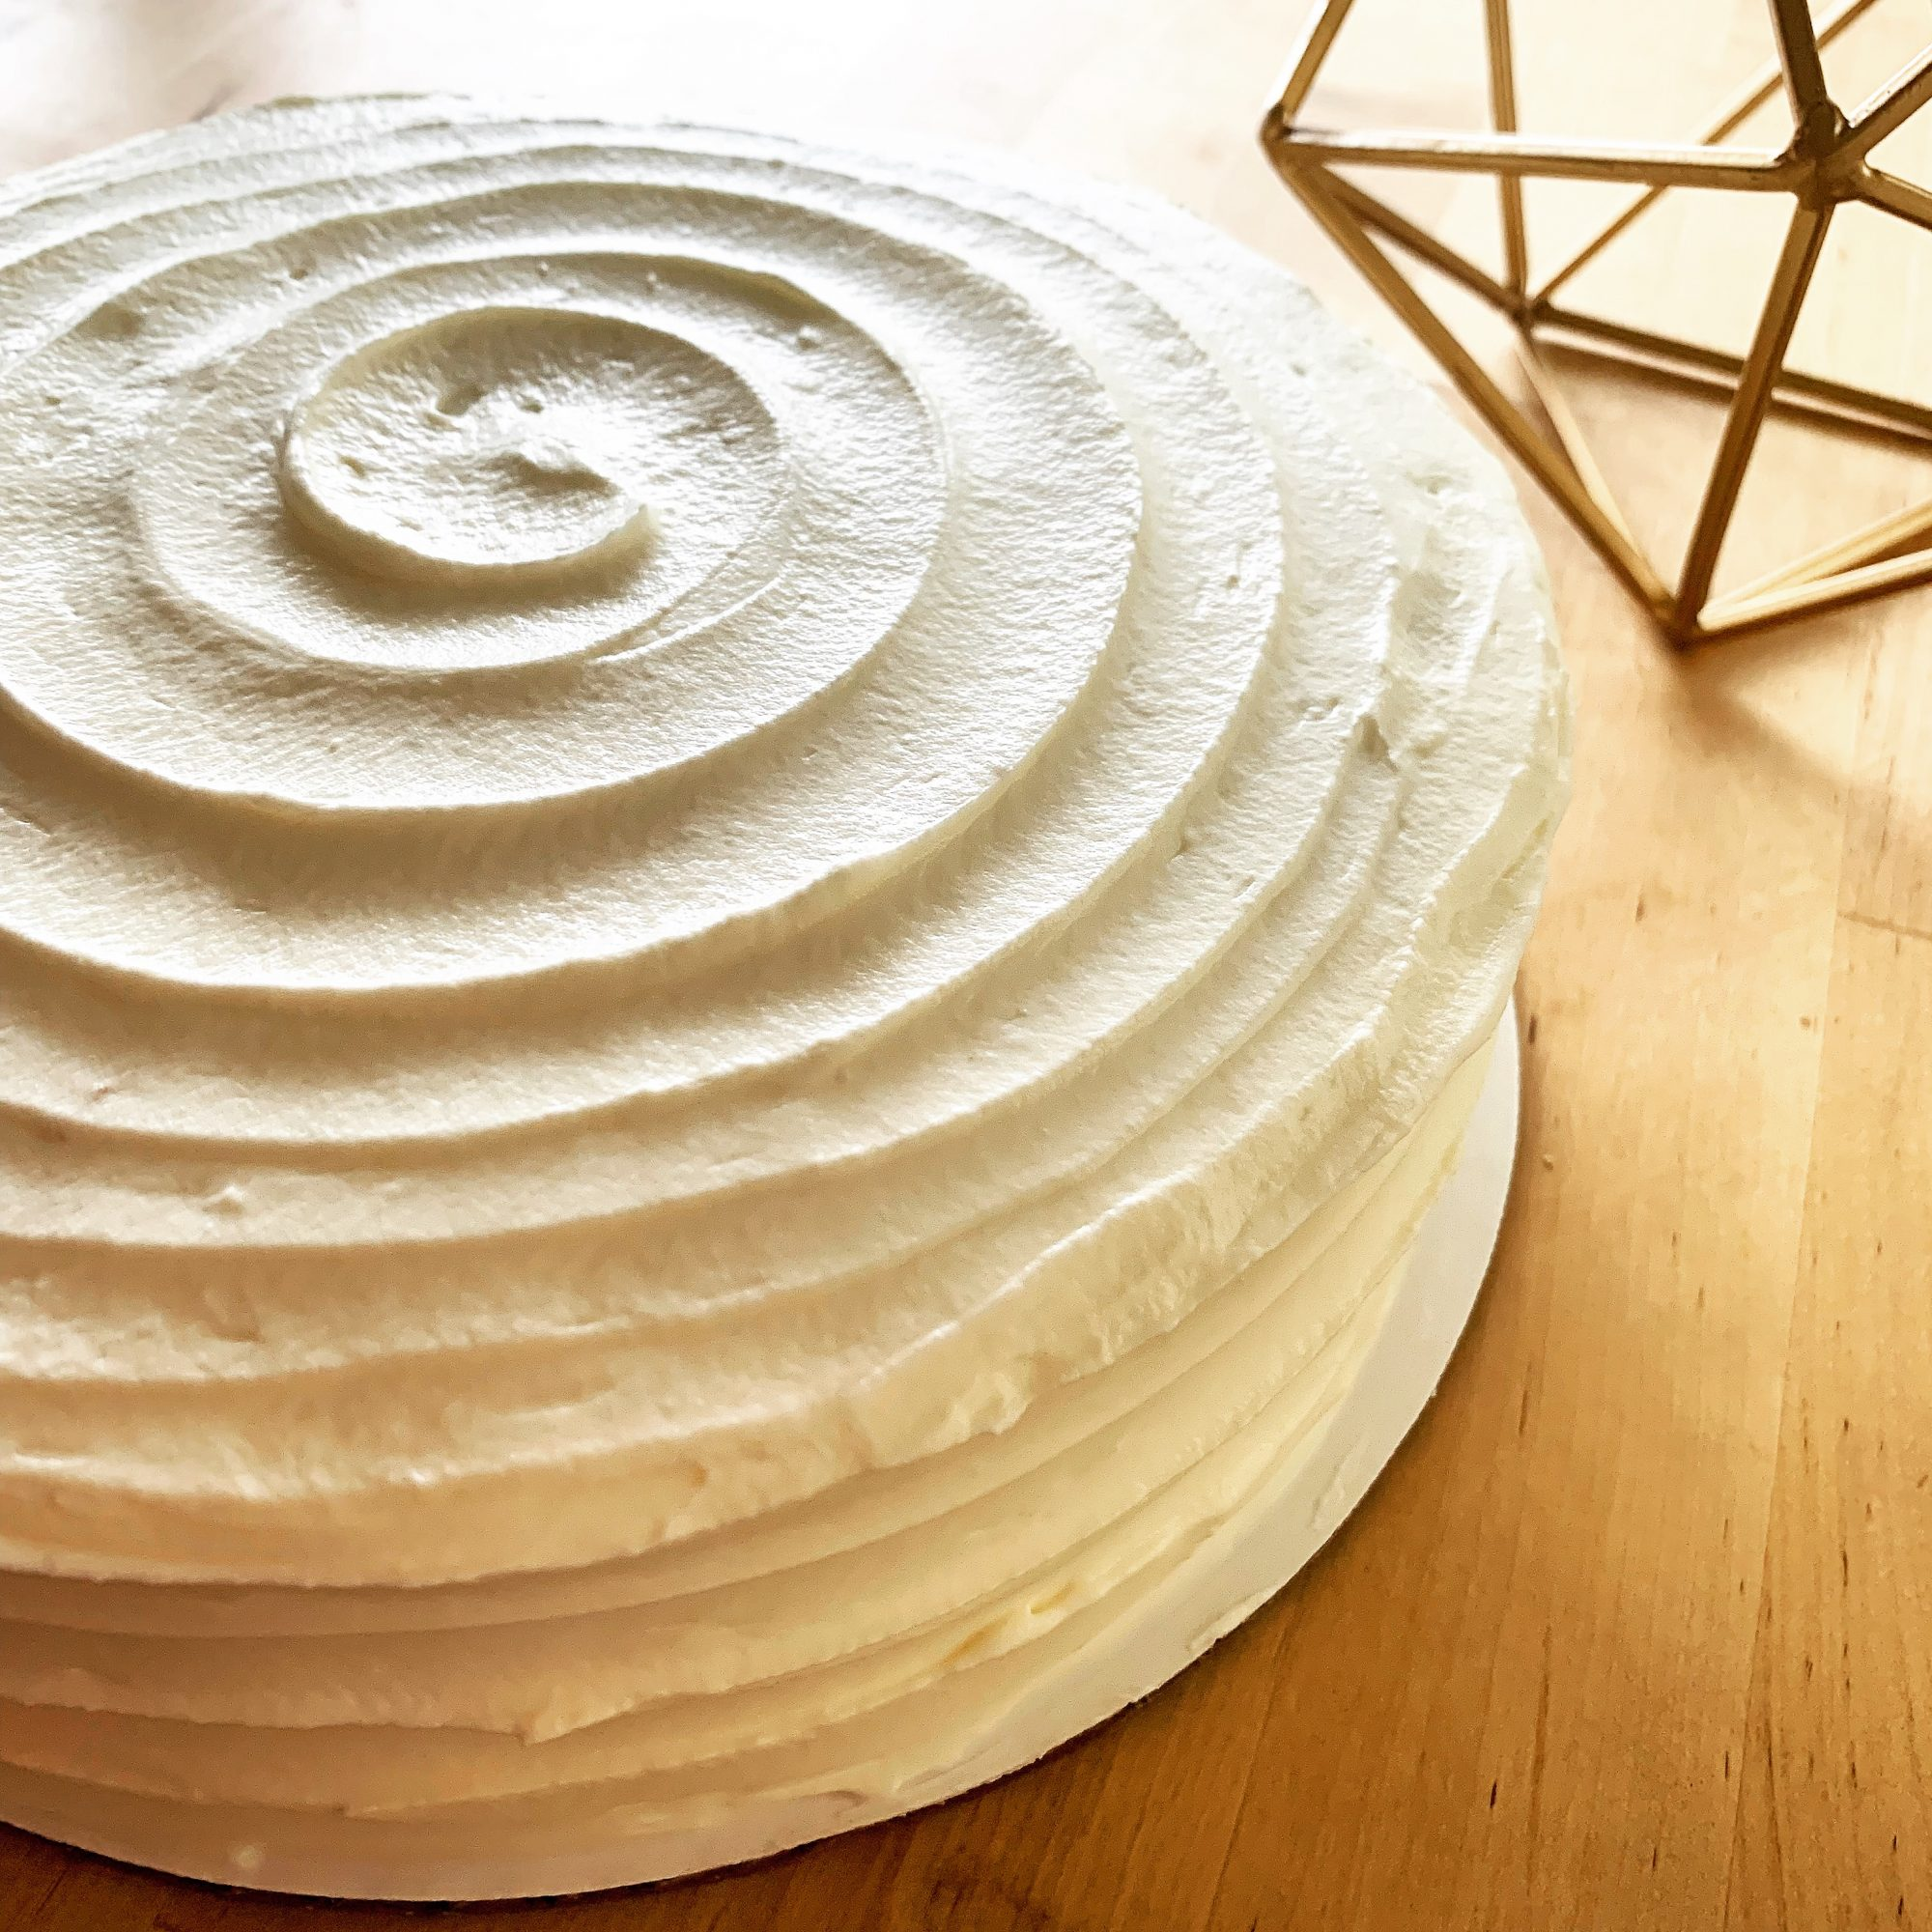 tres leche cake with swirled white frosting